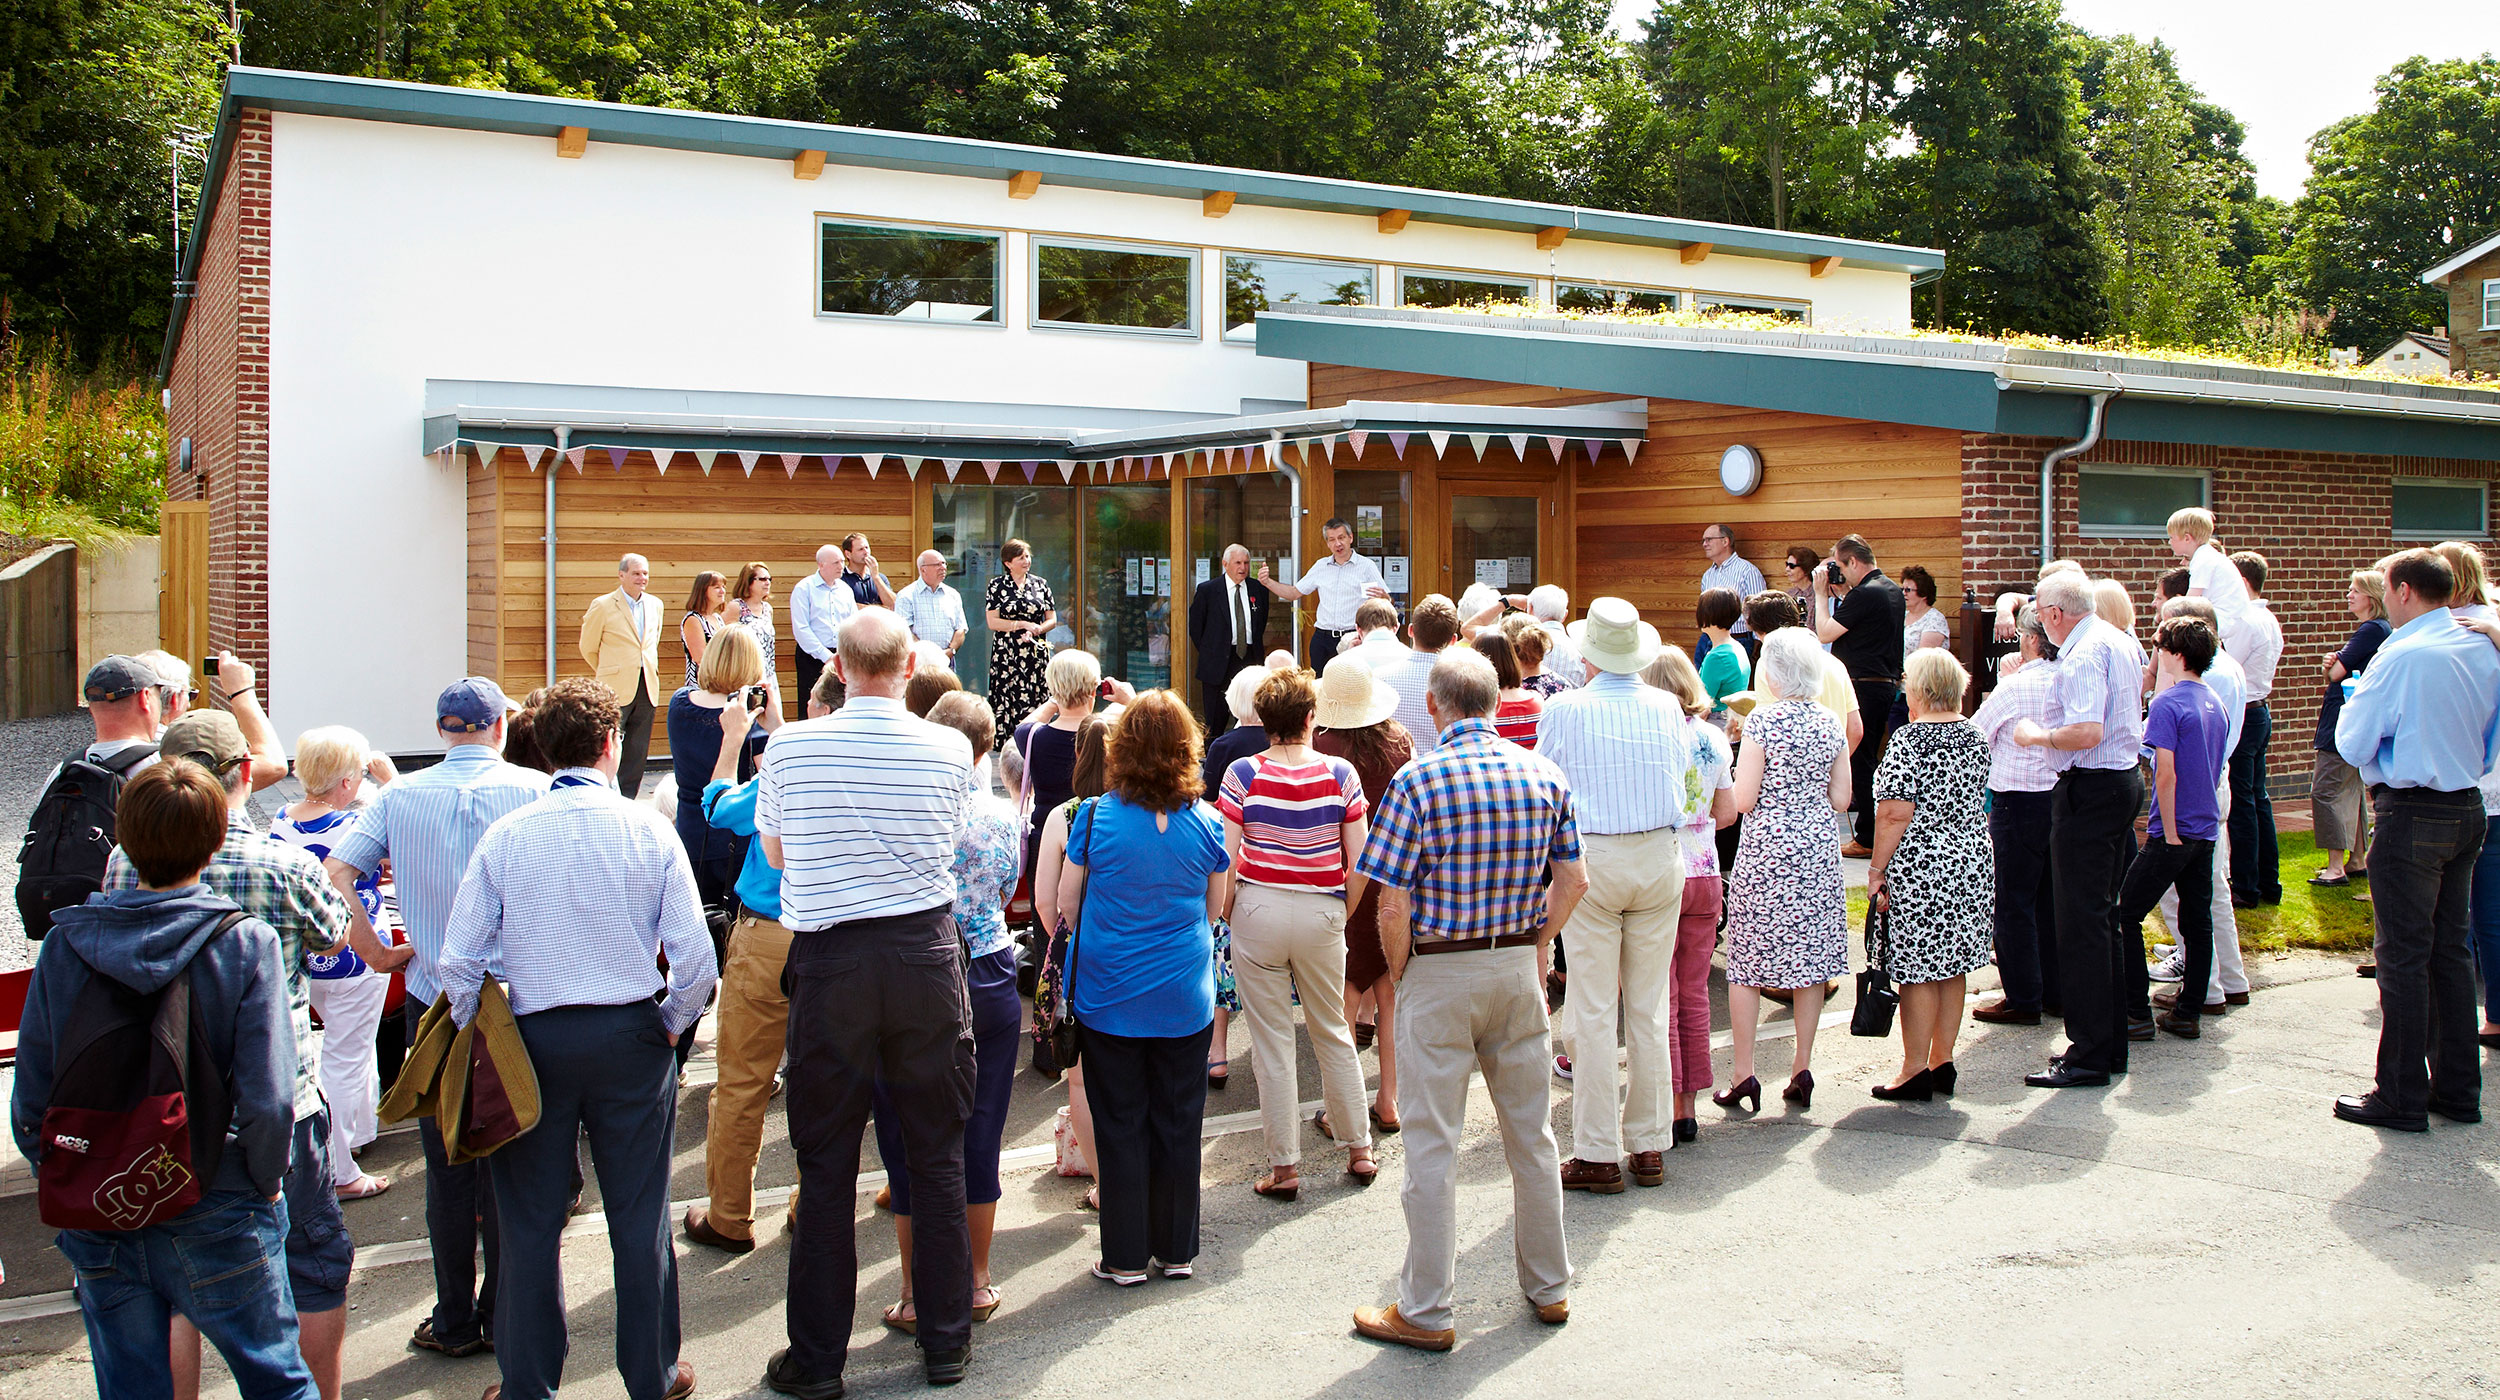 Husthwaite Village Hall - A low carbon structure using natural materials